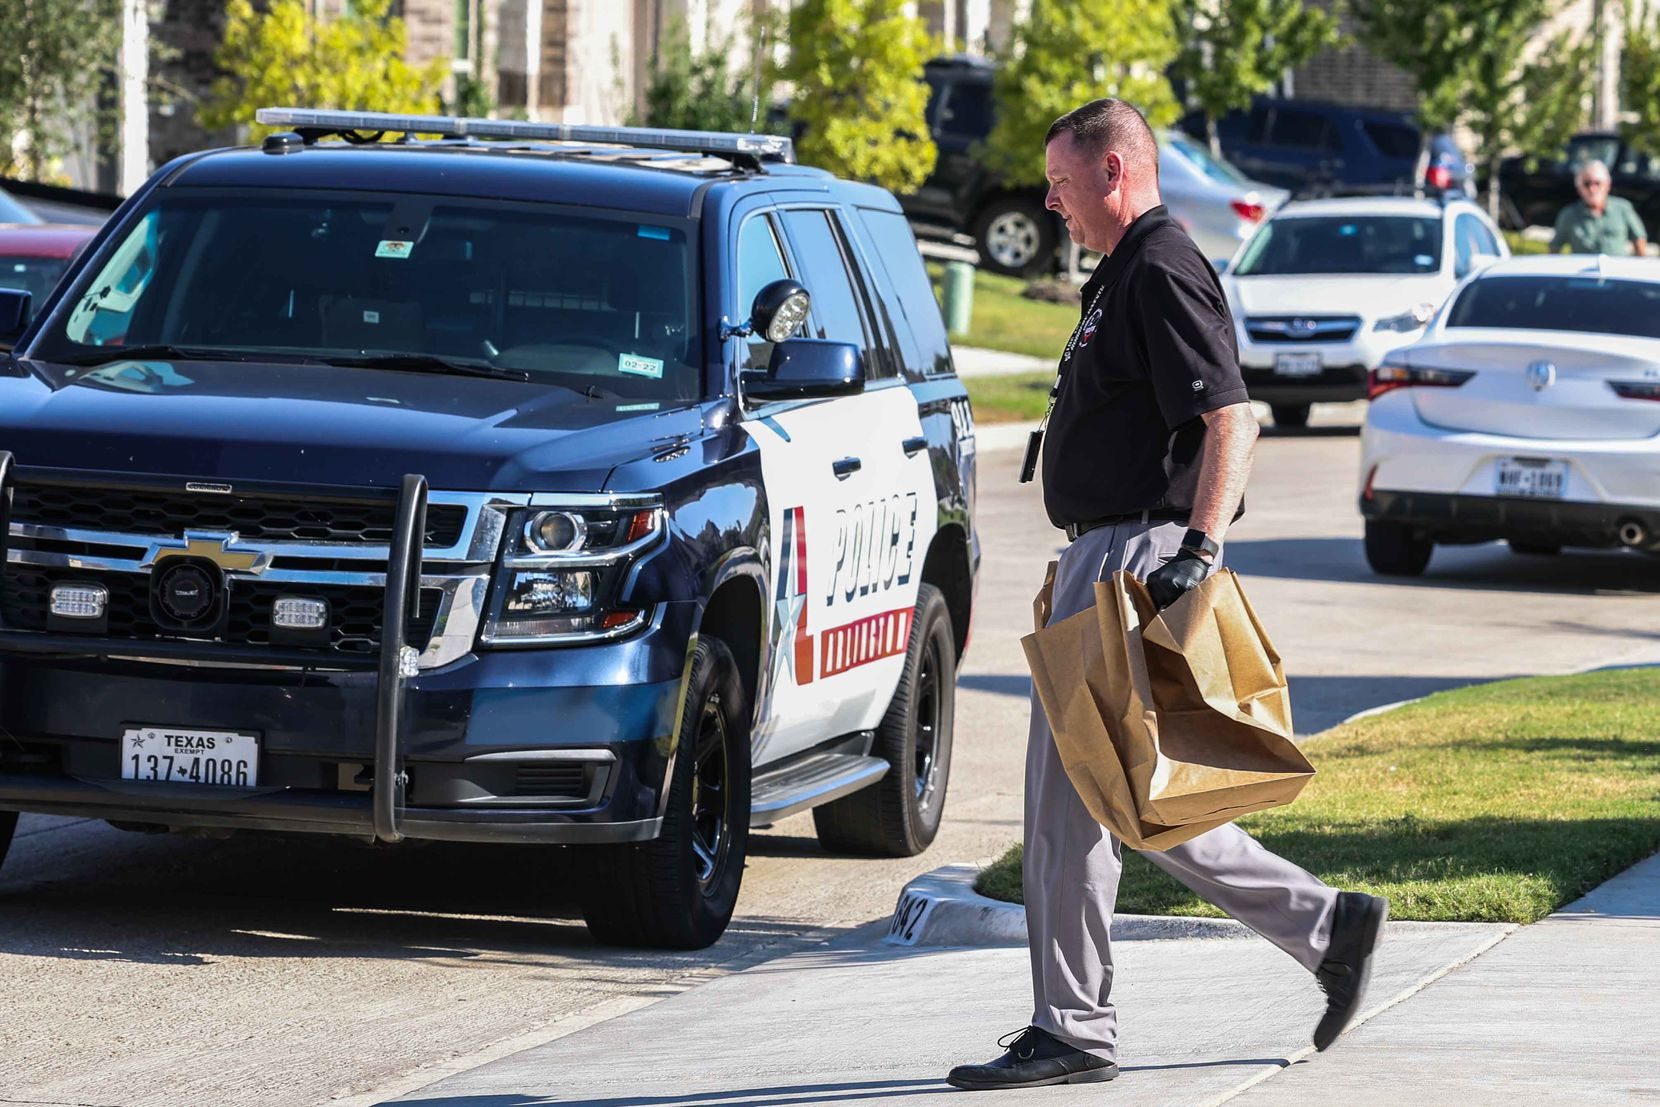 An Arlington police officer carries bags of evidence from Timothy George Simpkins' home.